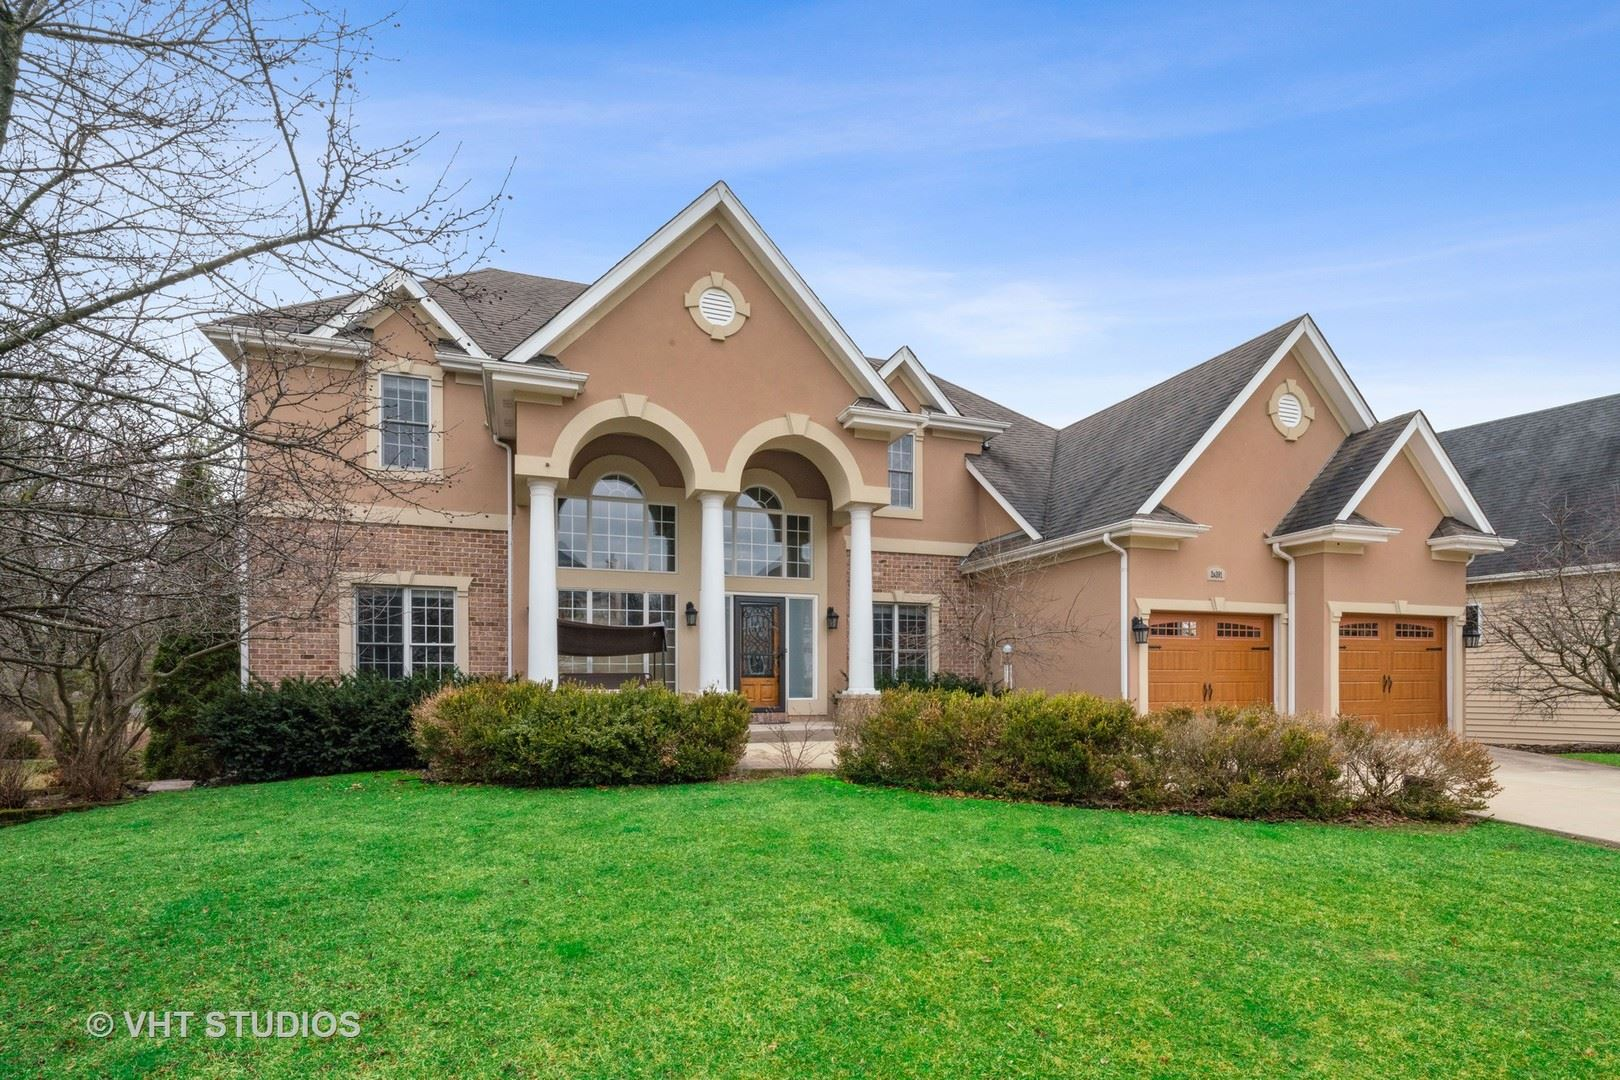 2S391 CHAUCER Court, Glen Ellyn, IL 60137 - #: 10780939